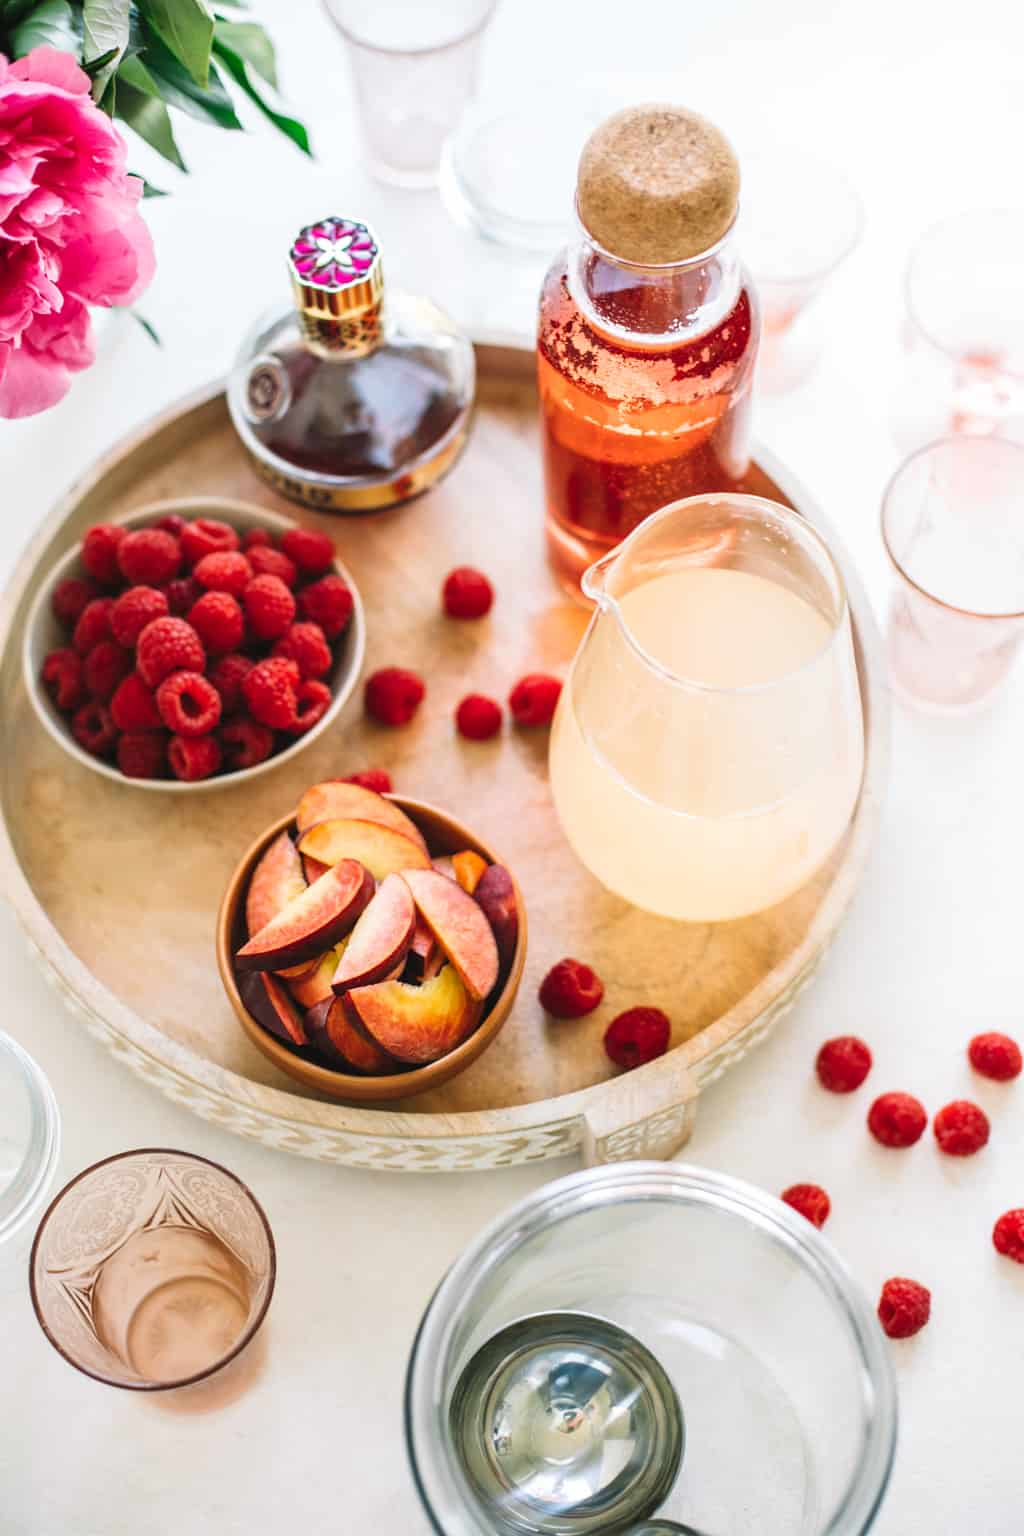 Fresh raspberries, fresh peach slices, lemonade in a pitcher, rosè in a pitcher and chambord on a wooden serving platter.